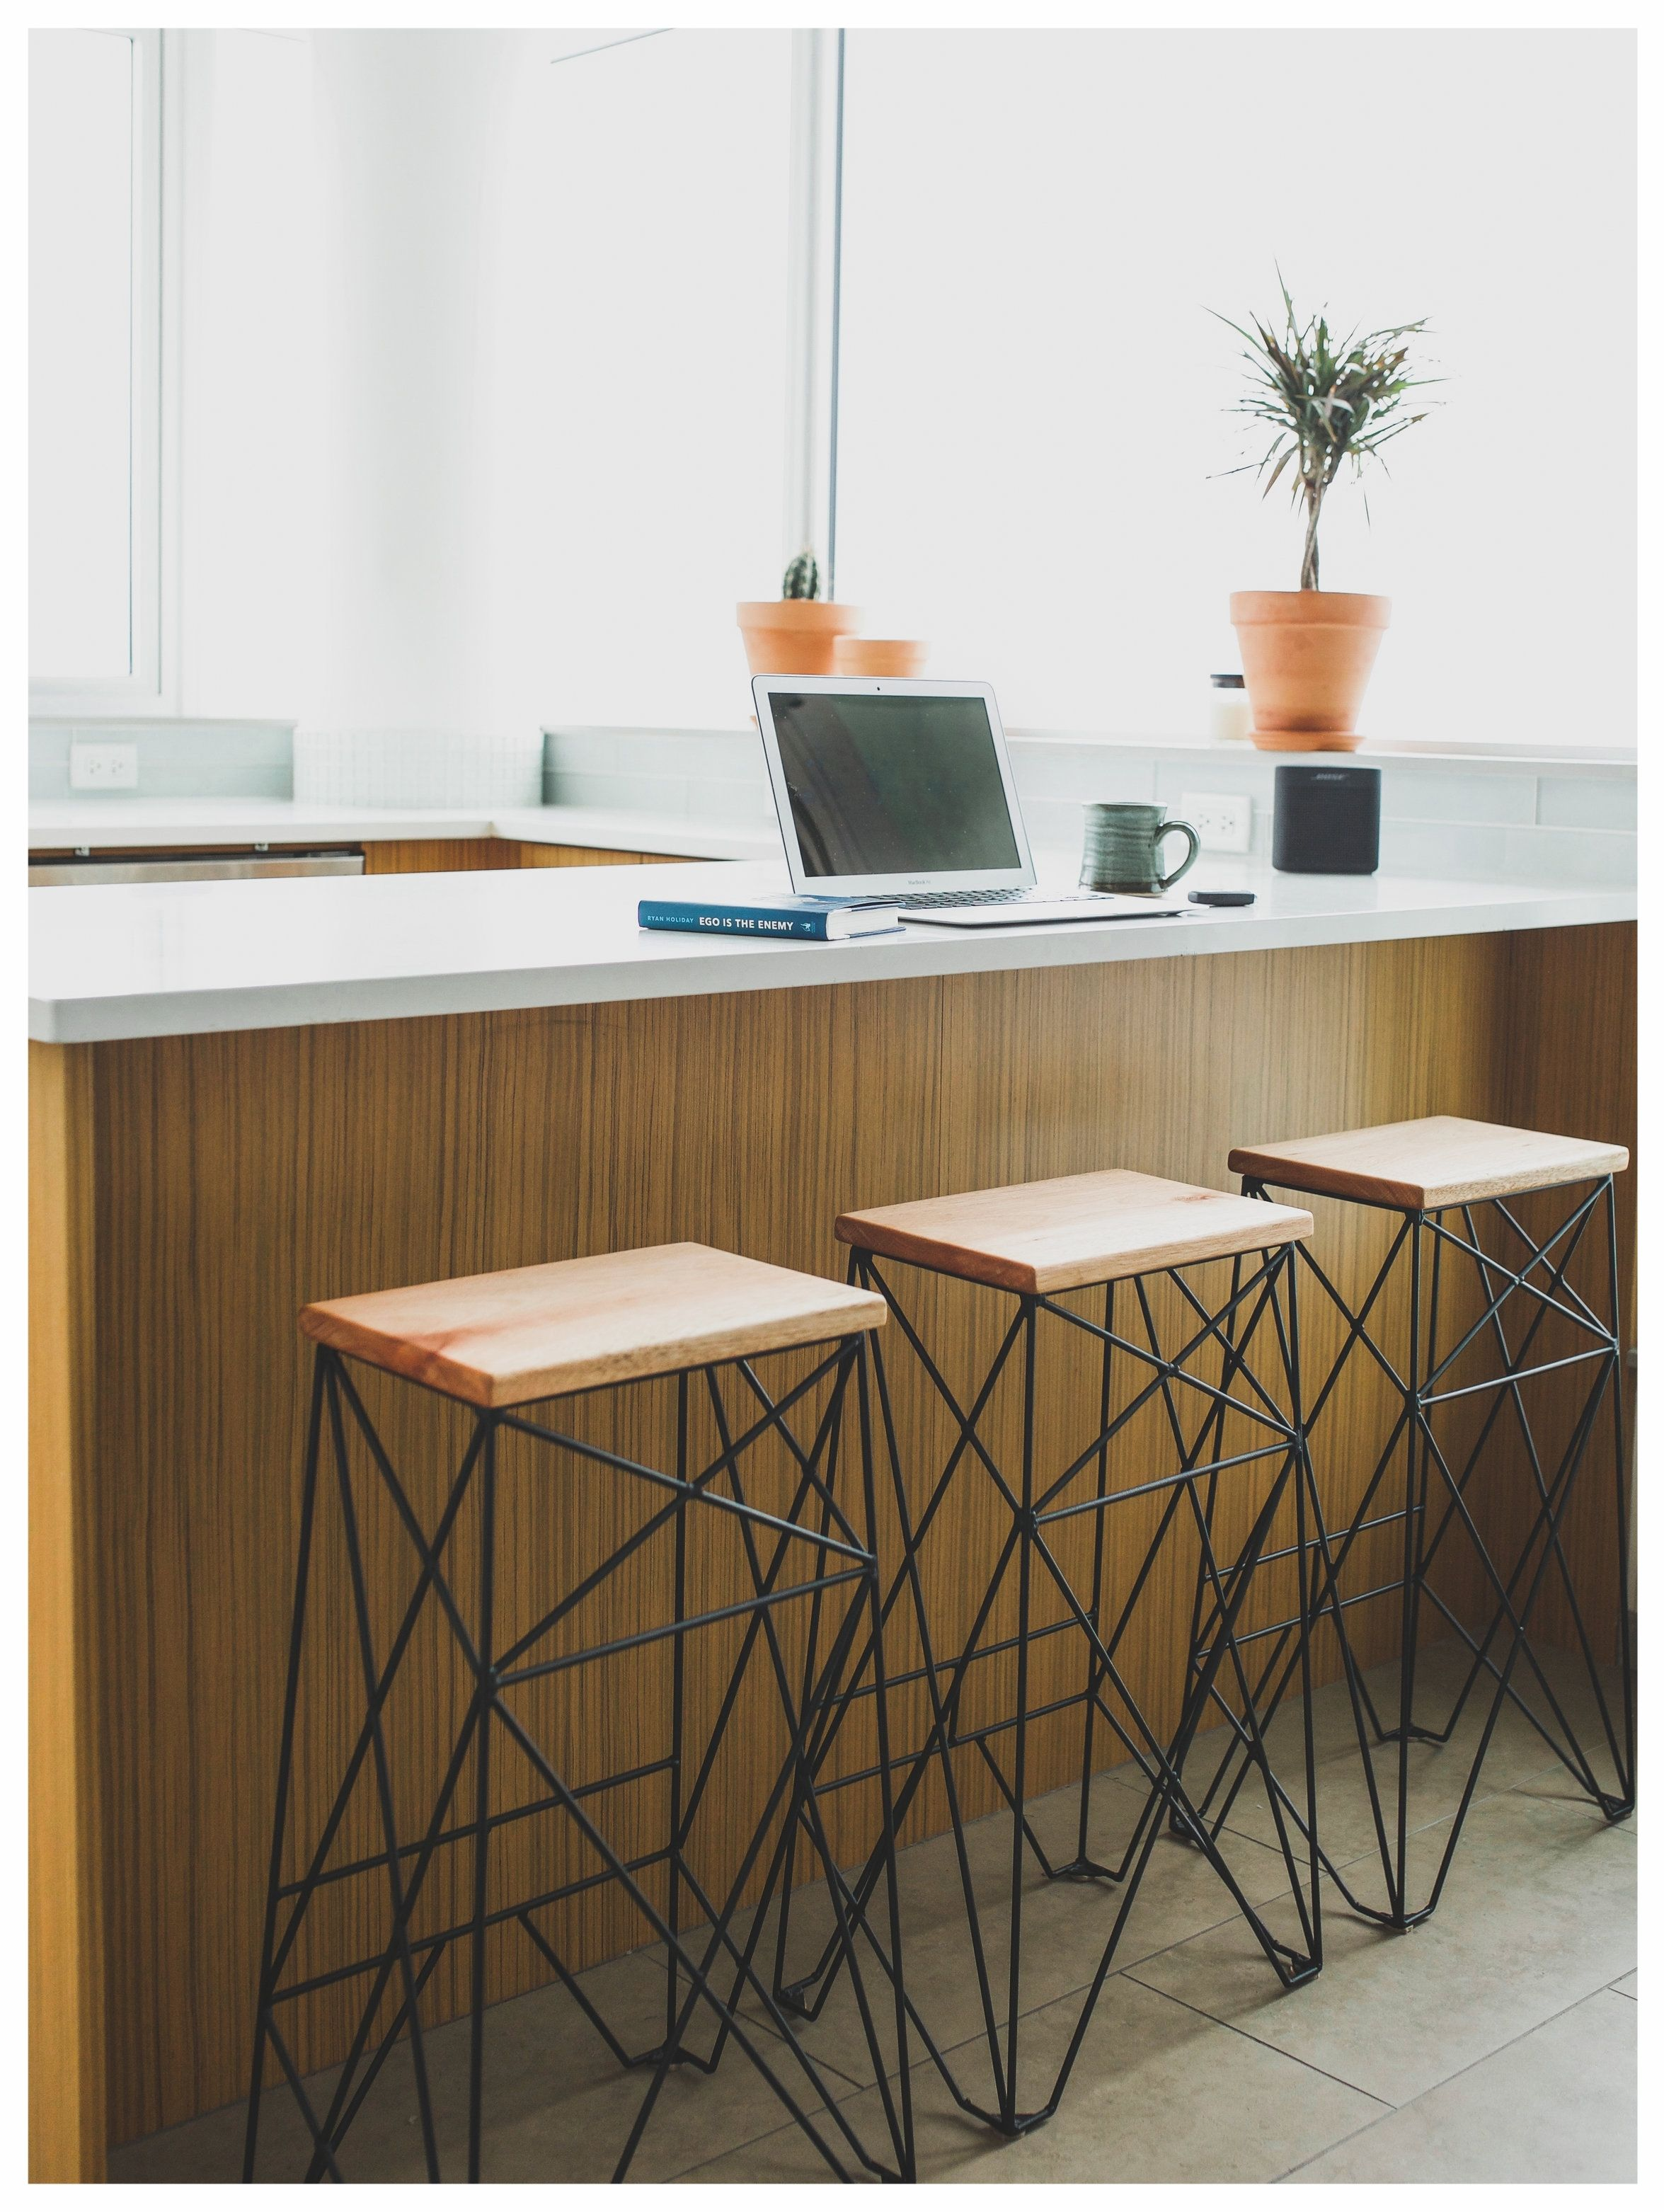 bar stools metal and wood. EXPLORER - Bar Stools From Archetype Concepts Metal. Wood. Geometric. Metal And Wood